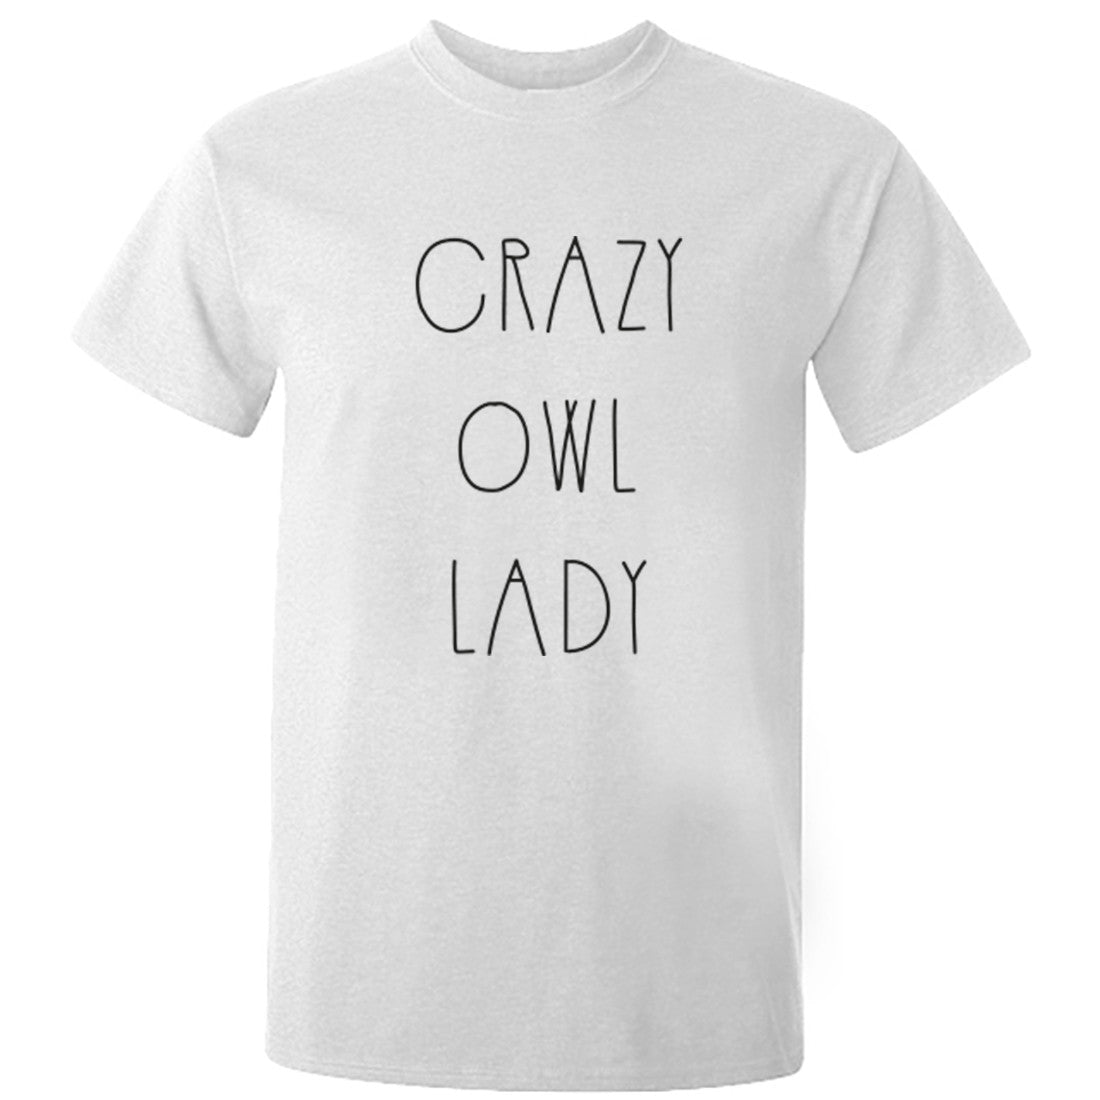 Crazy Owl Lady Unisex Fit T-Shirt K0593 - Illustrated Identity Ltd.